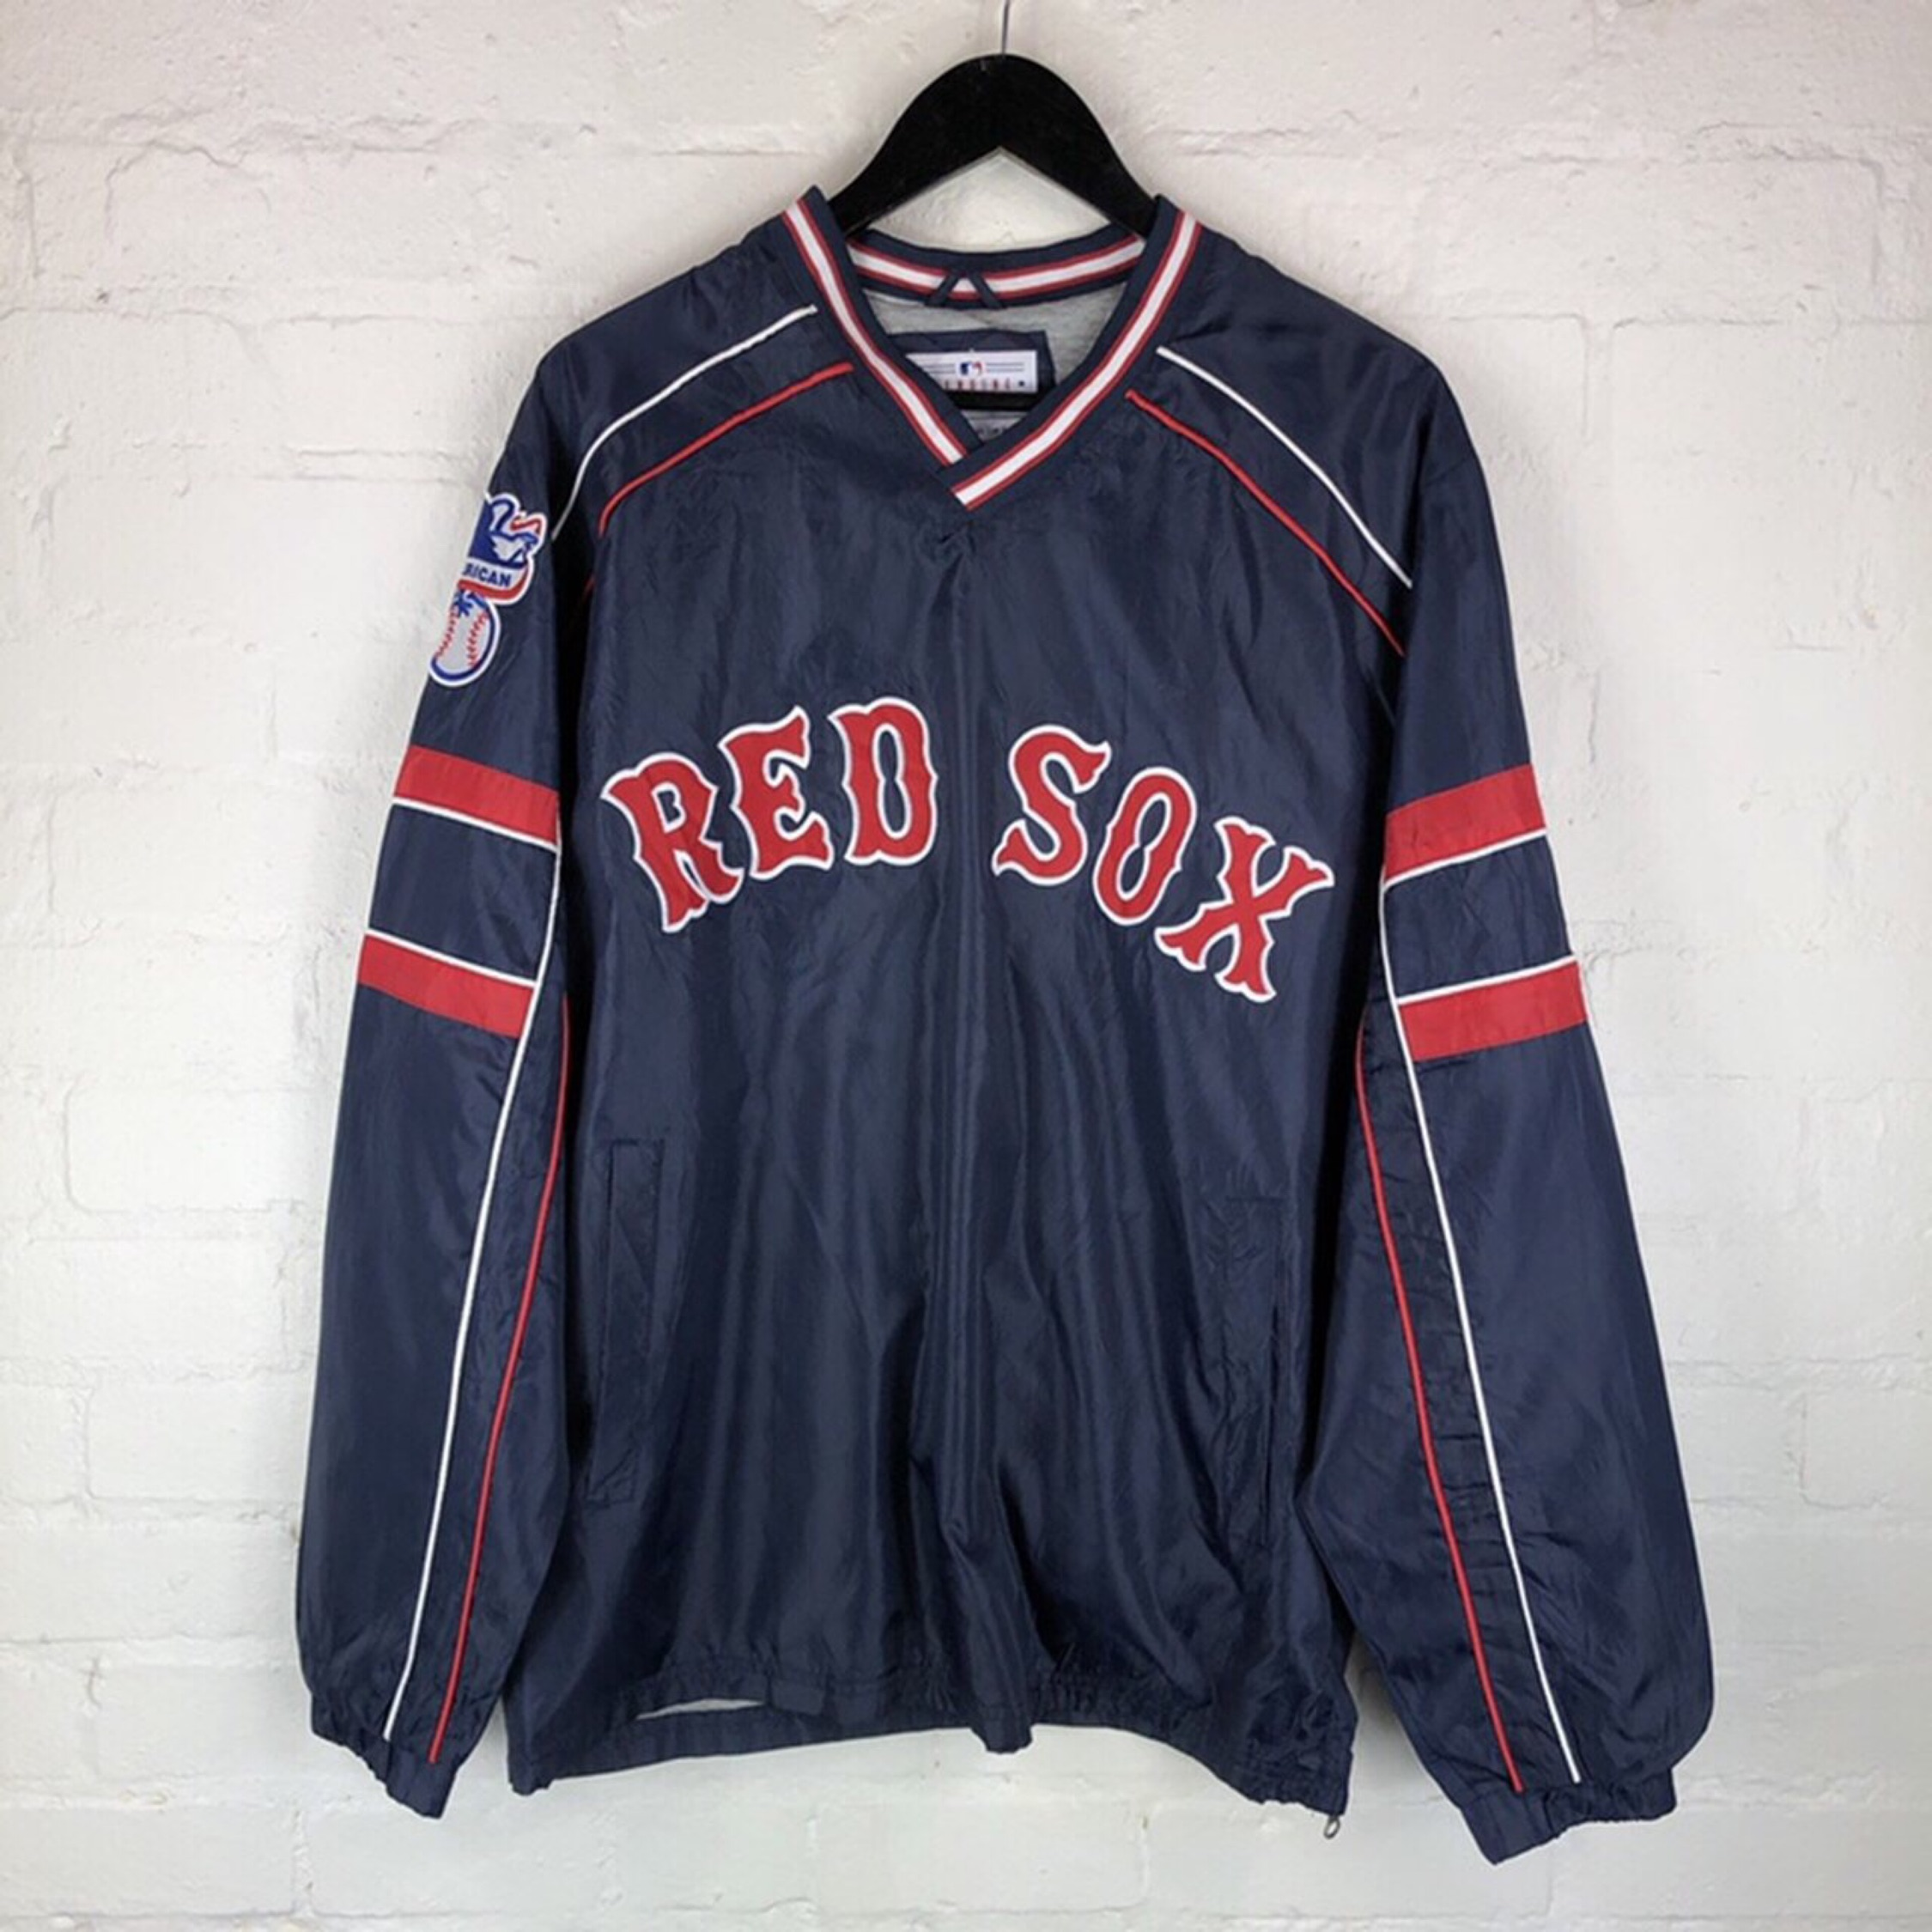 d8fe9b42e Vintage Boston Red Sox Shirt - Nils Stucki Kieferorthopäde